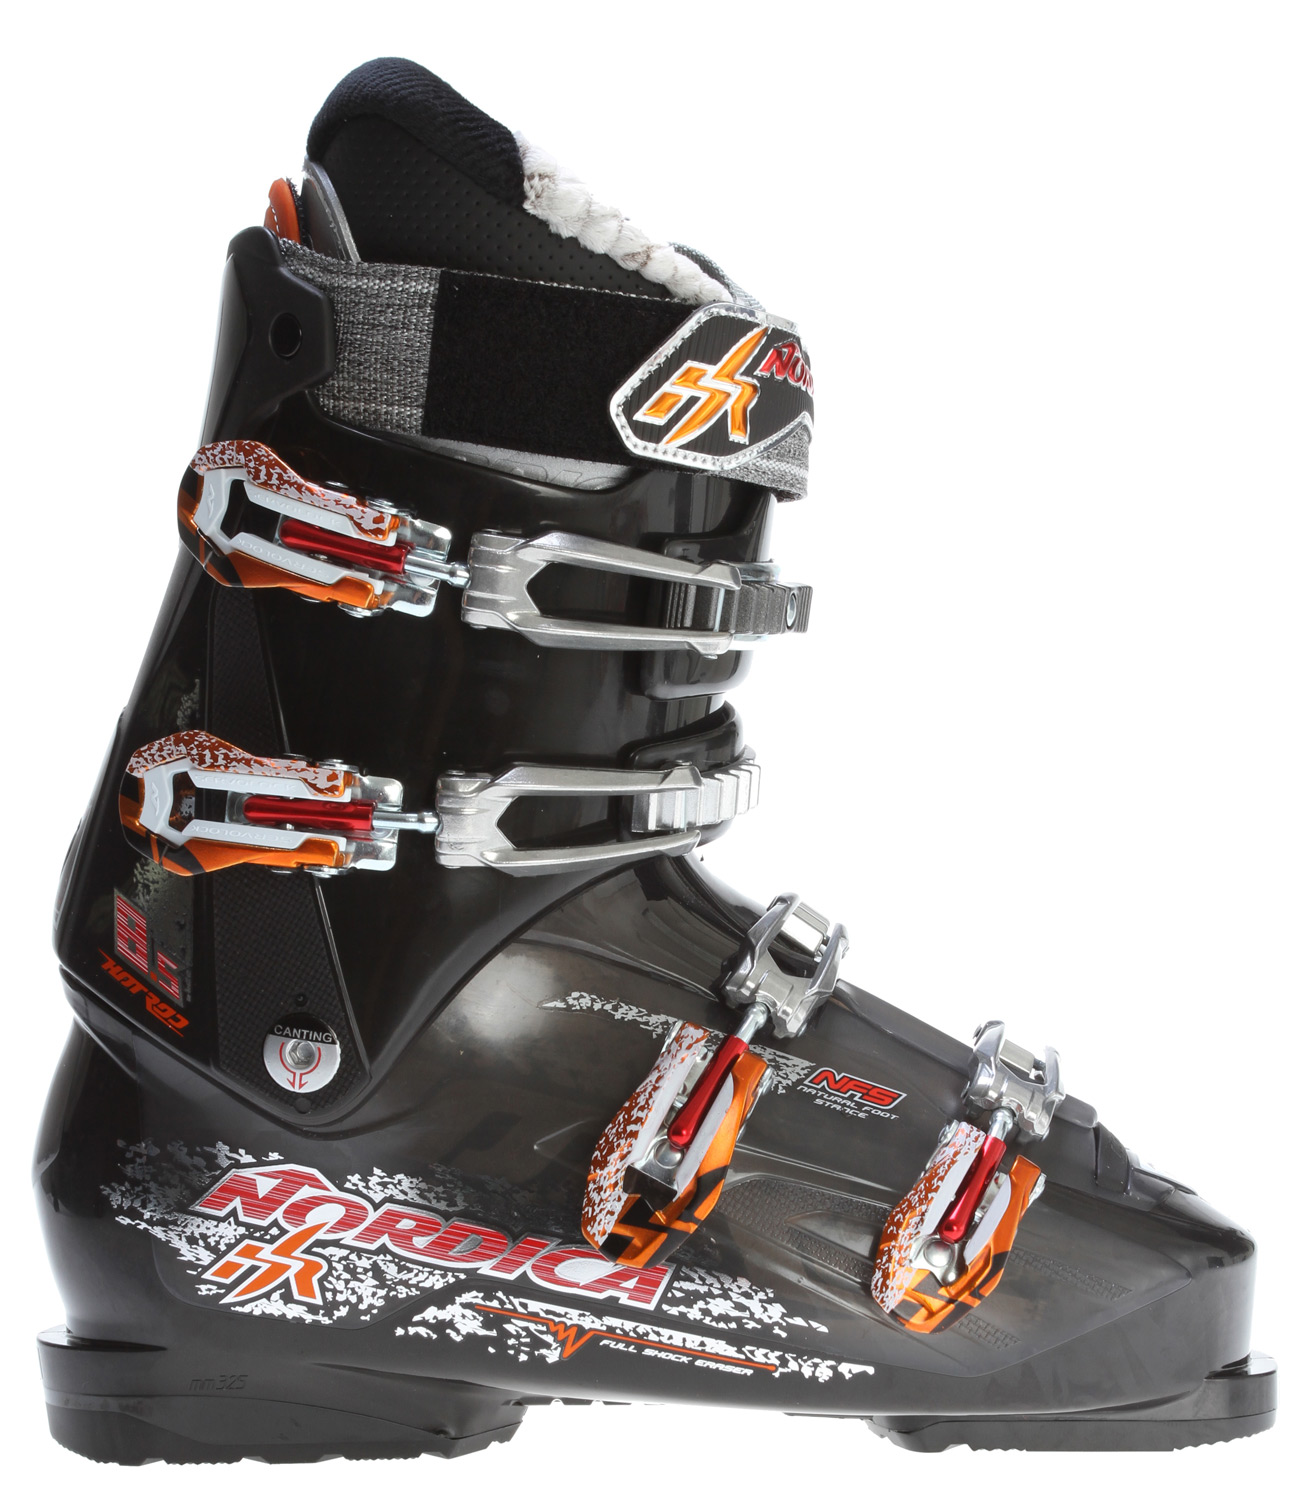 Ski Nordica Hot Rod 8.5 Ski Boots - $199.95